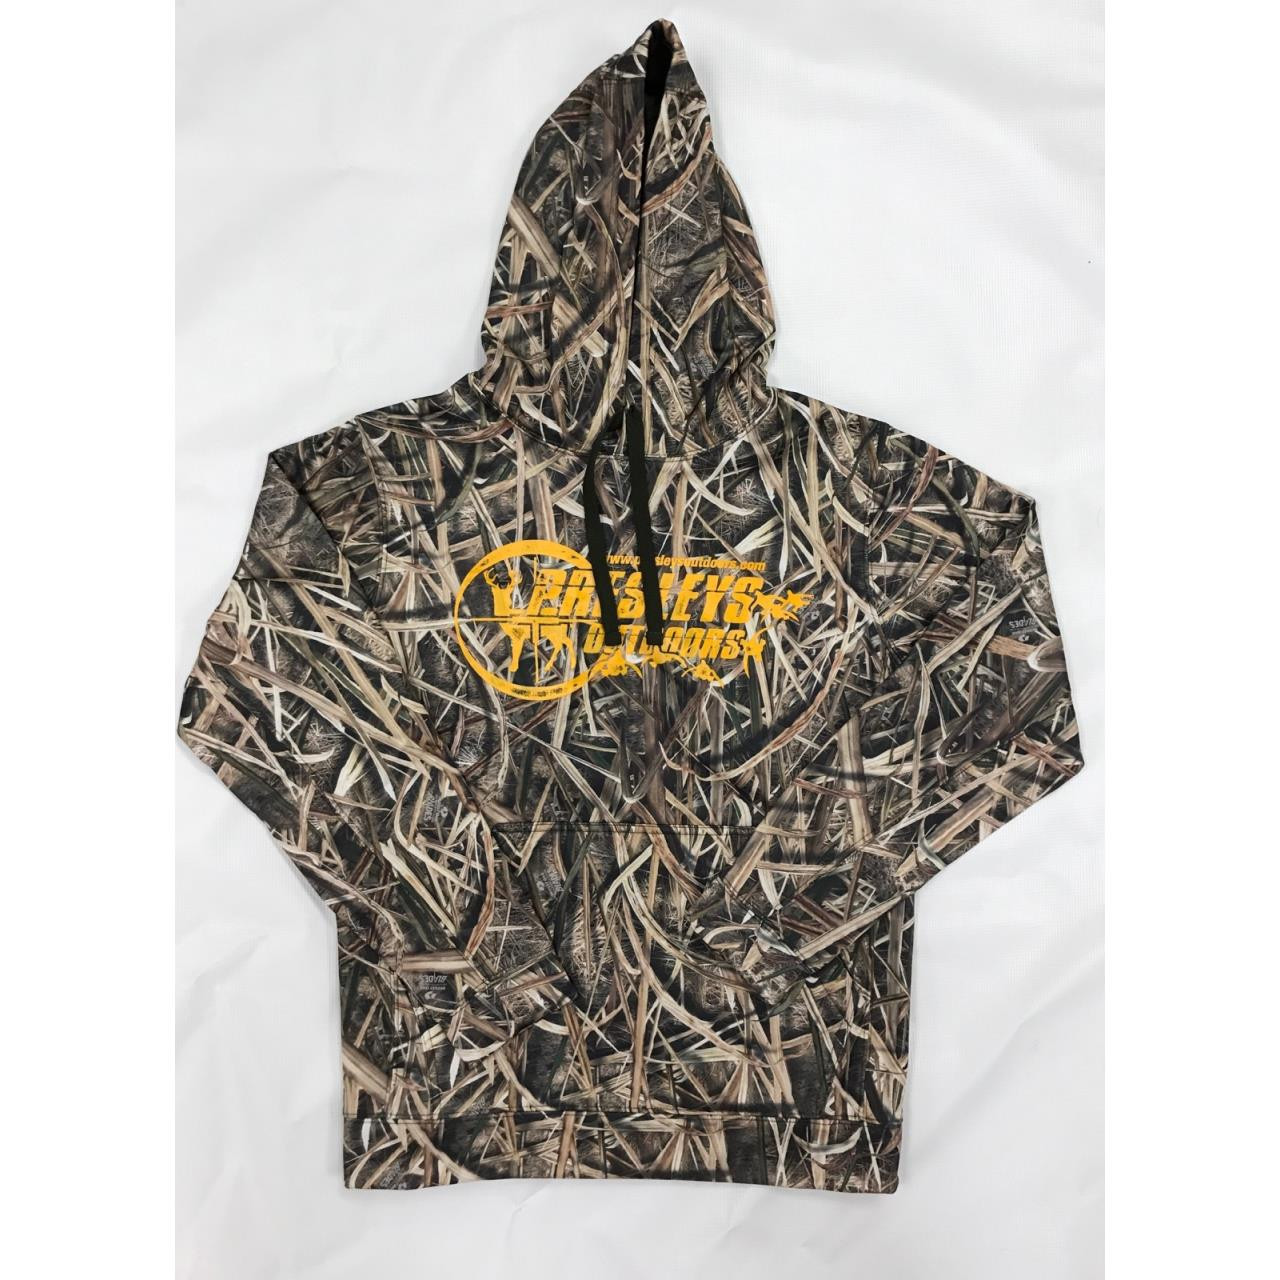 Presleys Poly Hoody - Mossy Oak Shadow Grass Blades - 400001381342